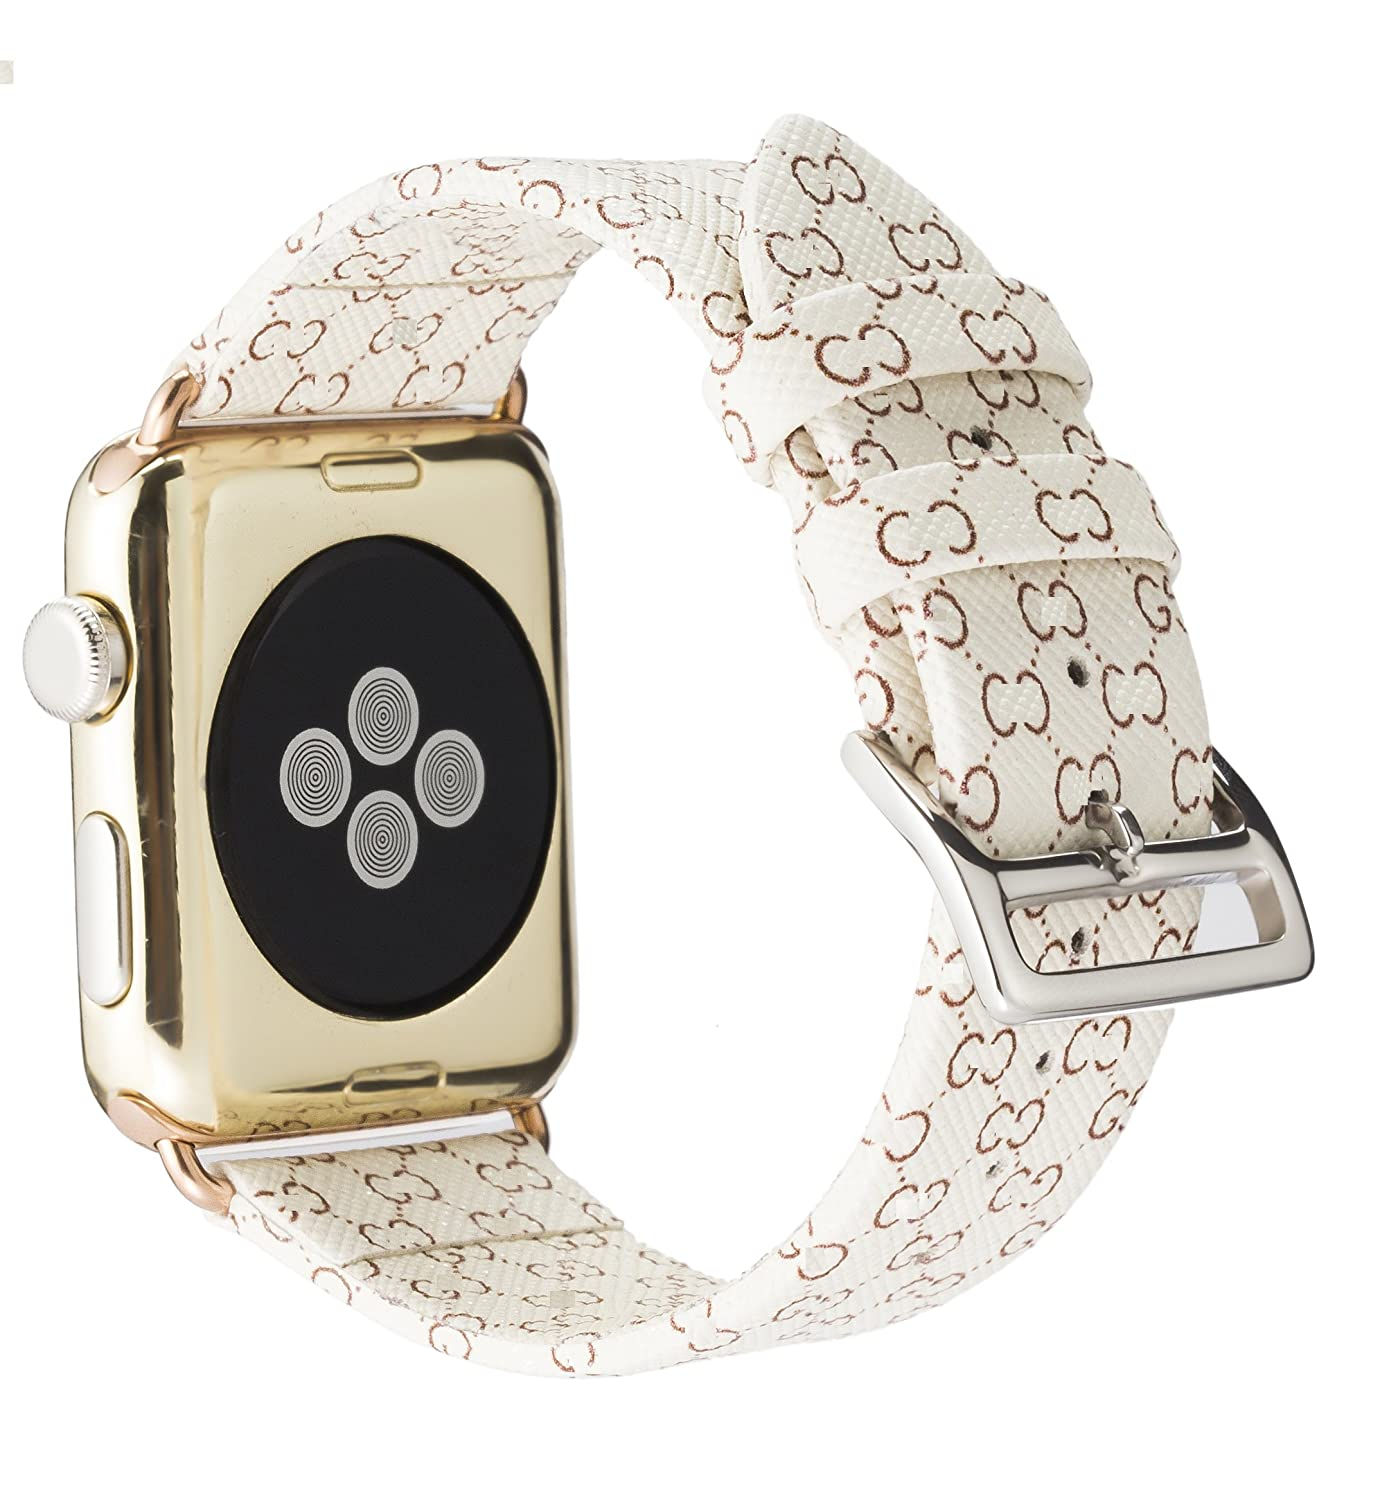 for-apple-watch-band-42mm-fashion-leather-iwatch-sport-series-1-series-2-series-3-strap-for-women-men-color-rose-gold-metal-buckle-(beige-42mm) by goosuu